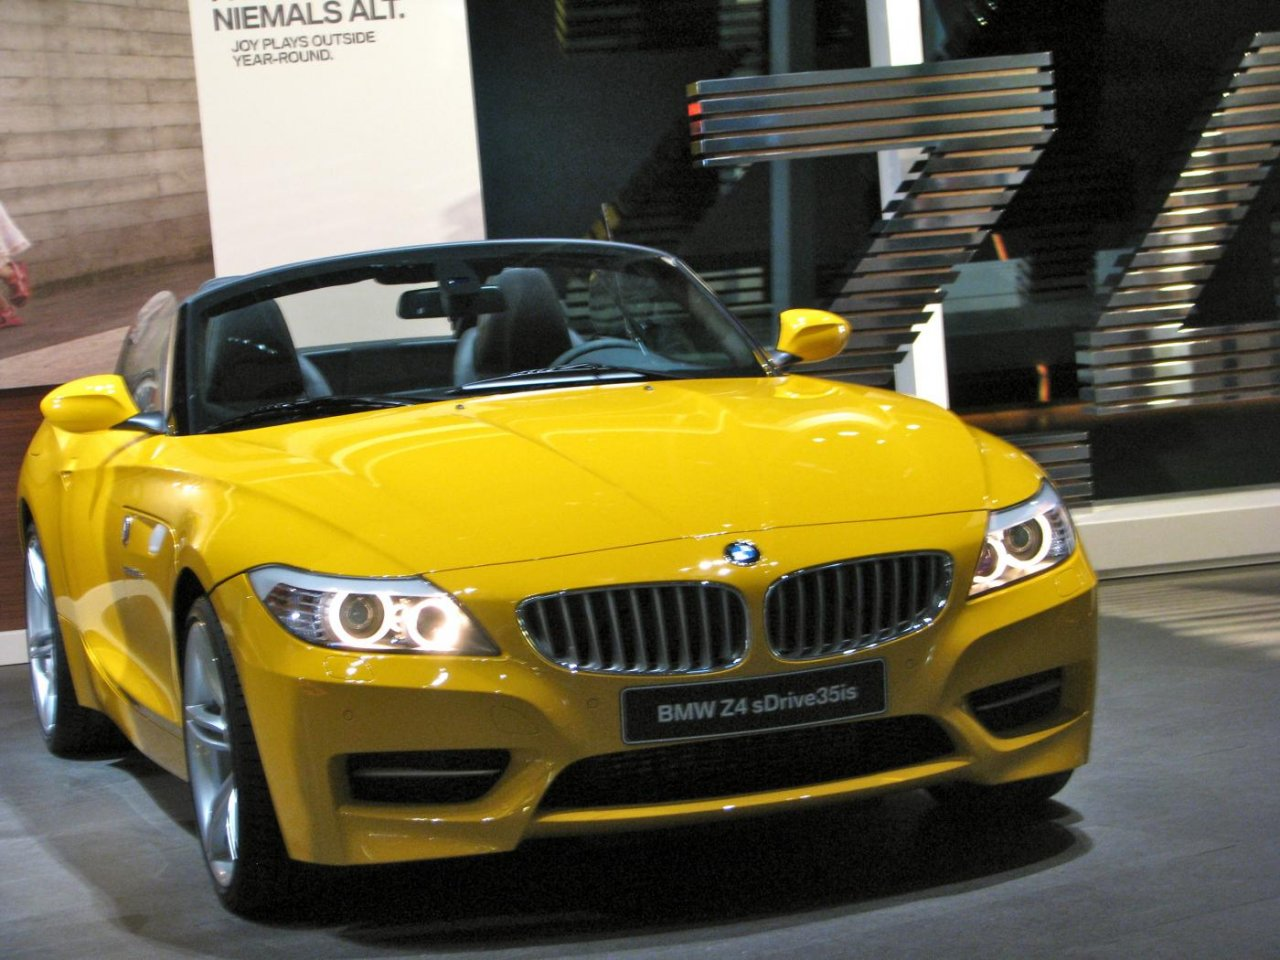 Bmw Z4 Sdrive 35is Laptimes Specs Performance Data